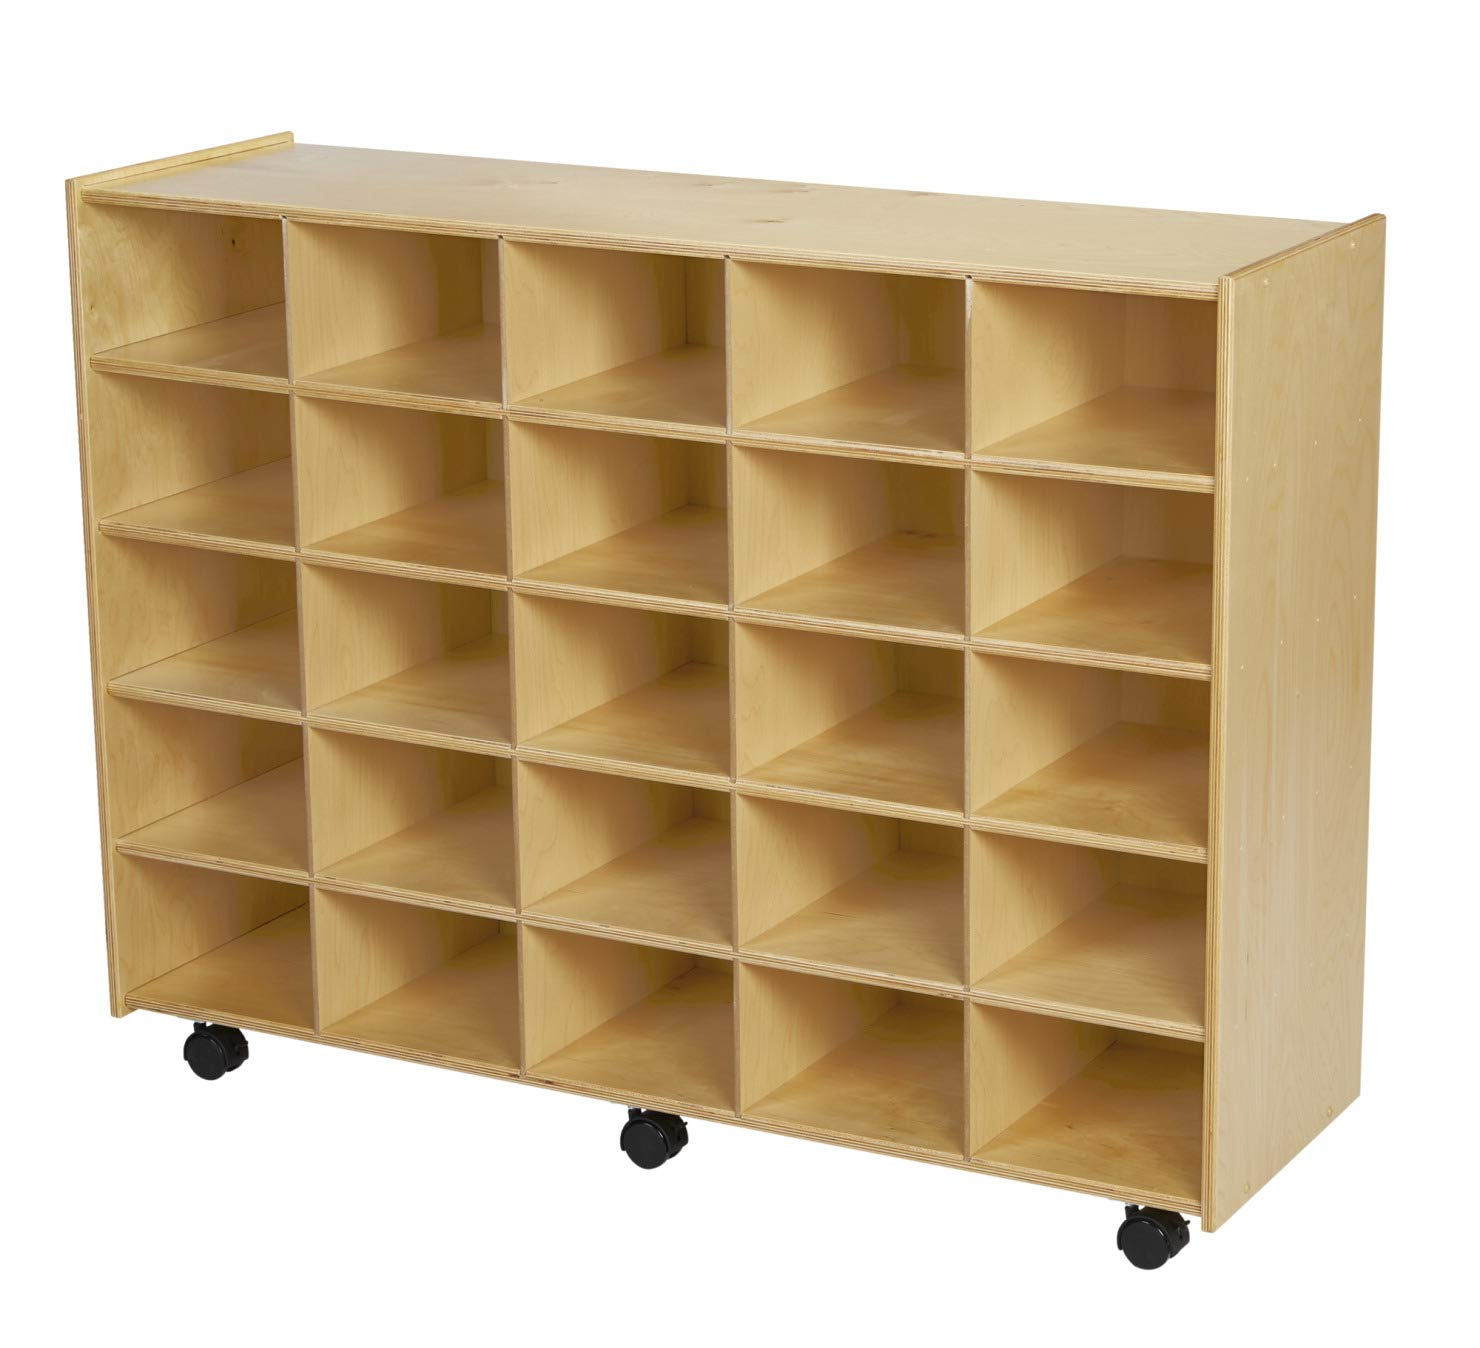 Childcraft Mobile Cubby Unit with Locking Casters, 47-3/4 x 14-1/4 x 36 Inches